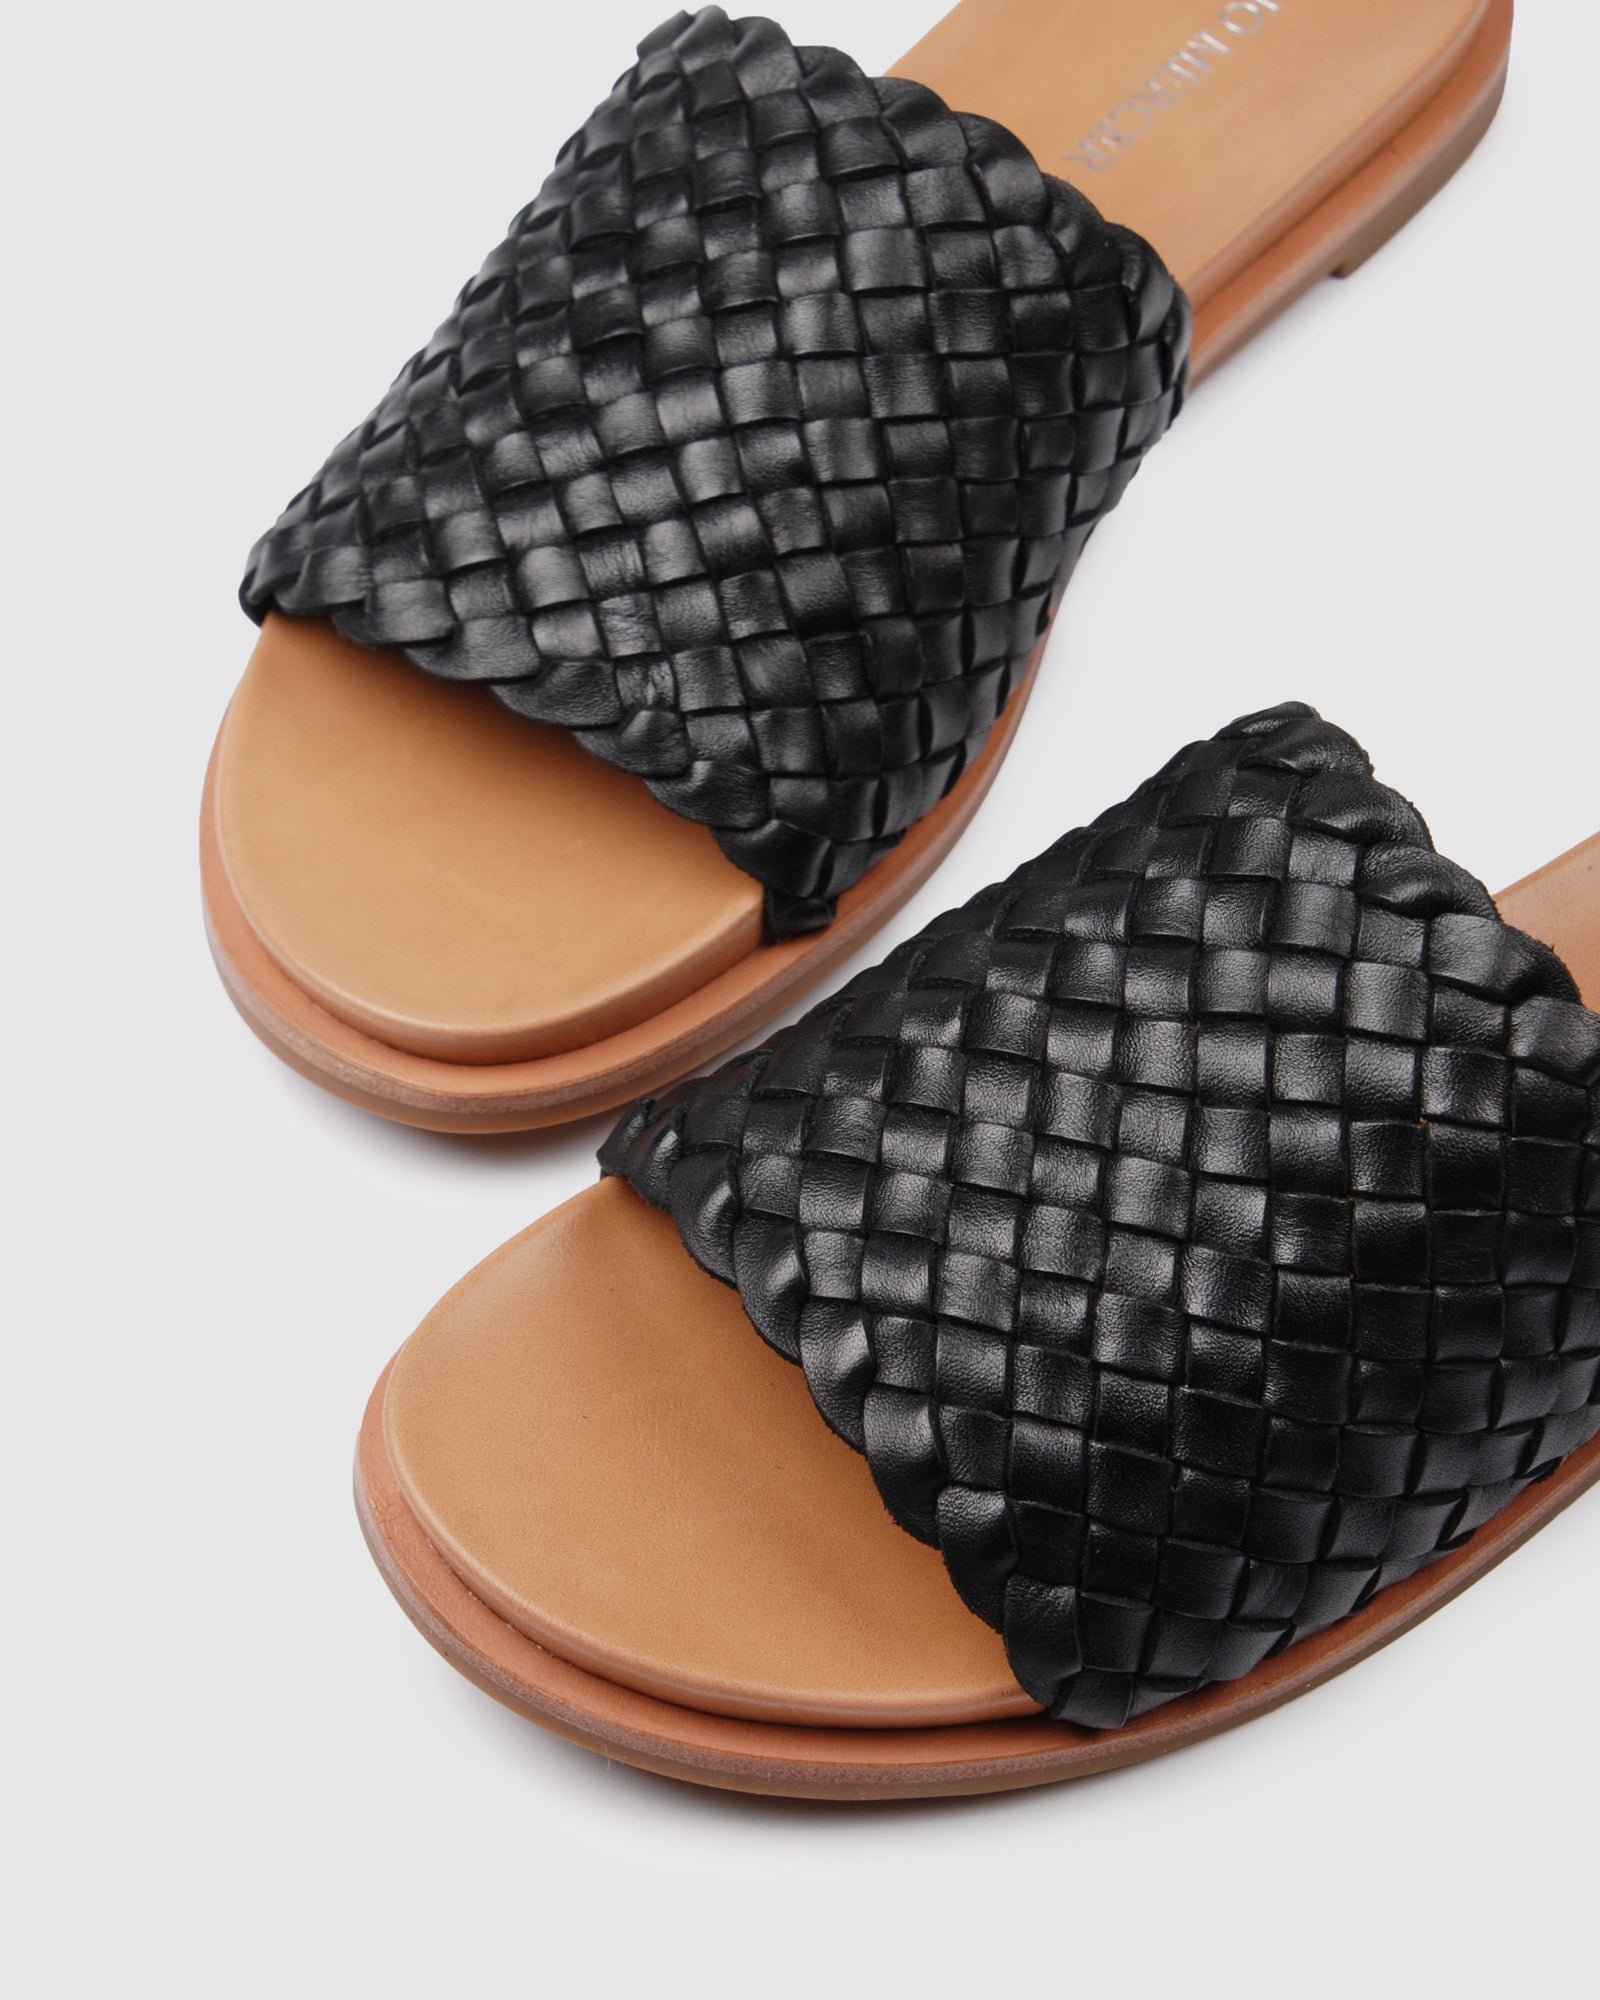 BEAU FLAT SANDALS BLACK LEATHER